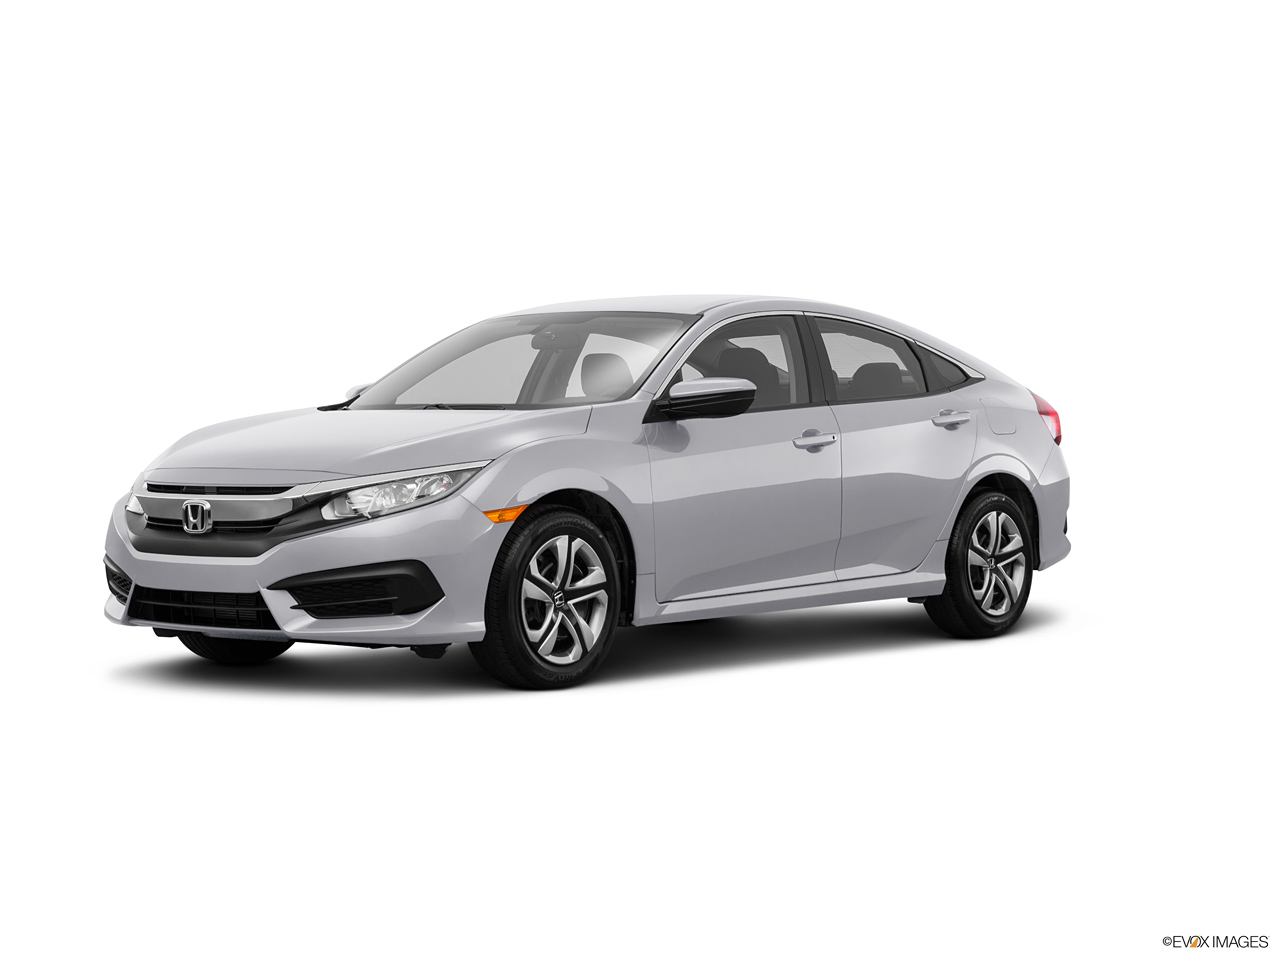 honda civic 2017 2 0 lx in uae new car prices specs reviews photos yallamotor. Black Bedroom Furniture Sets. Home Design Ideas